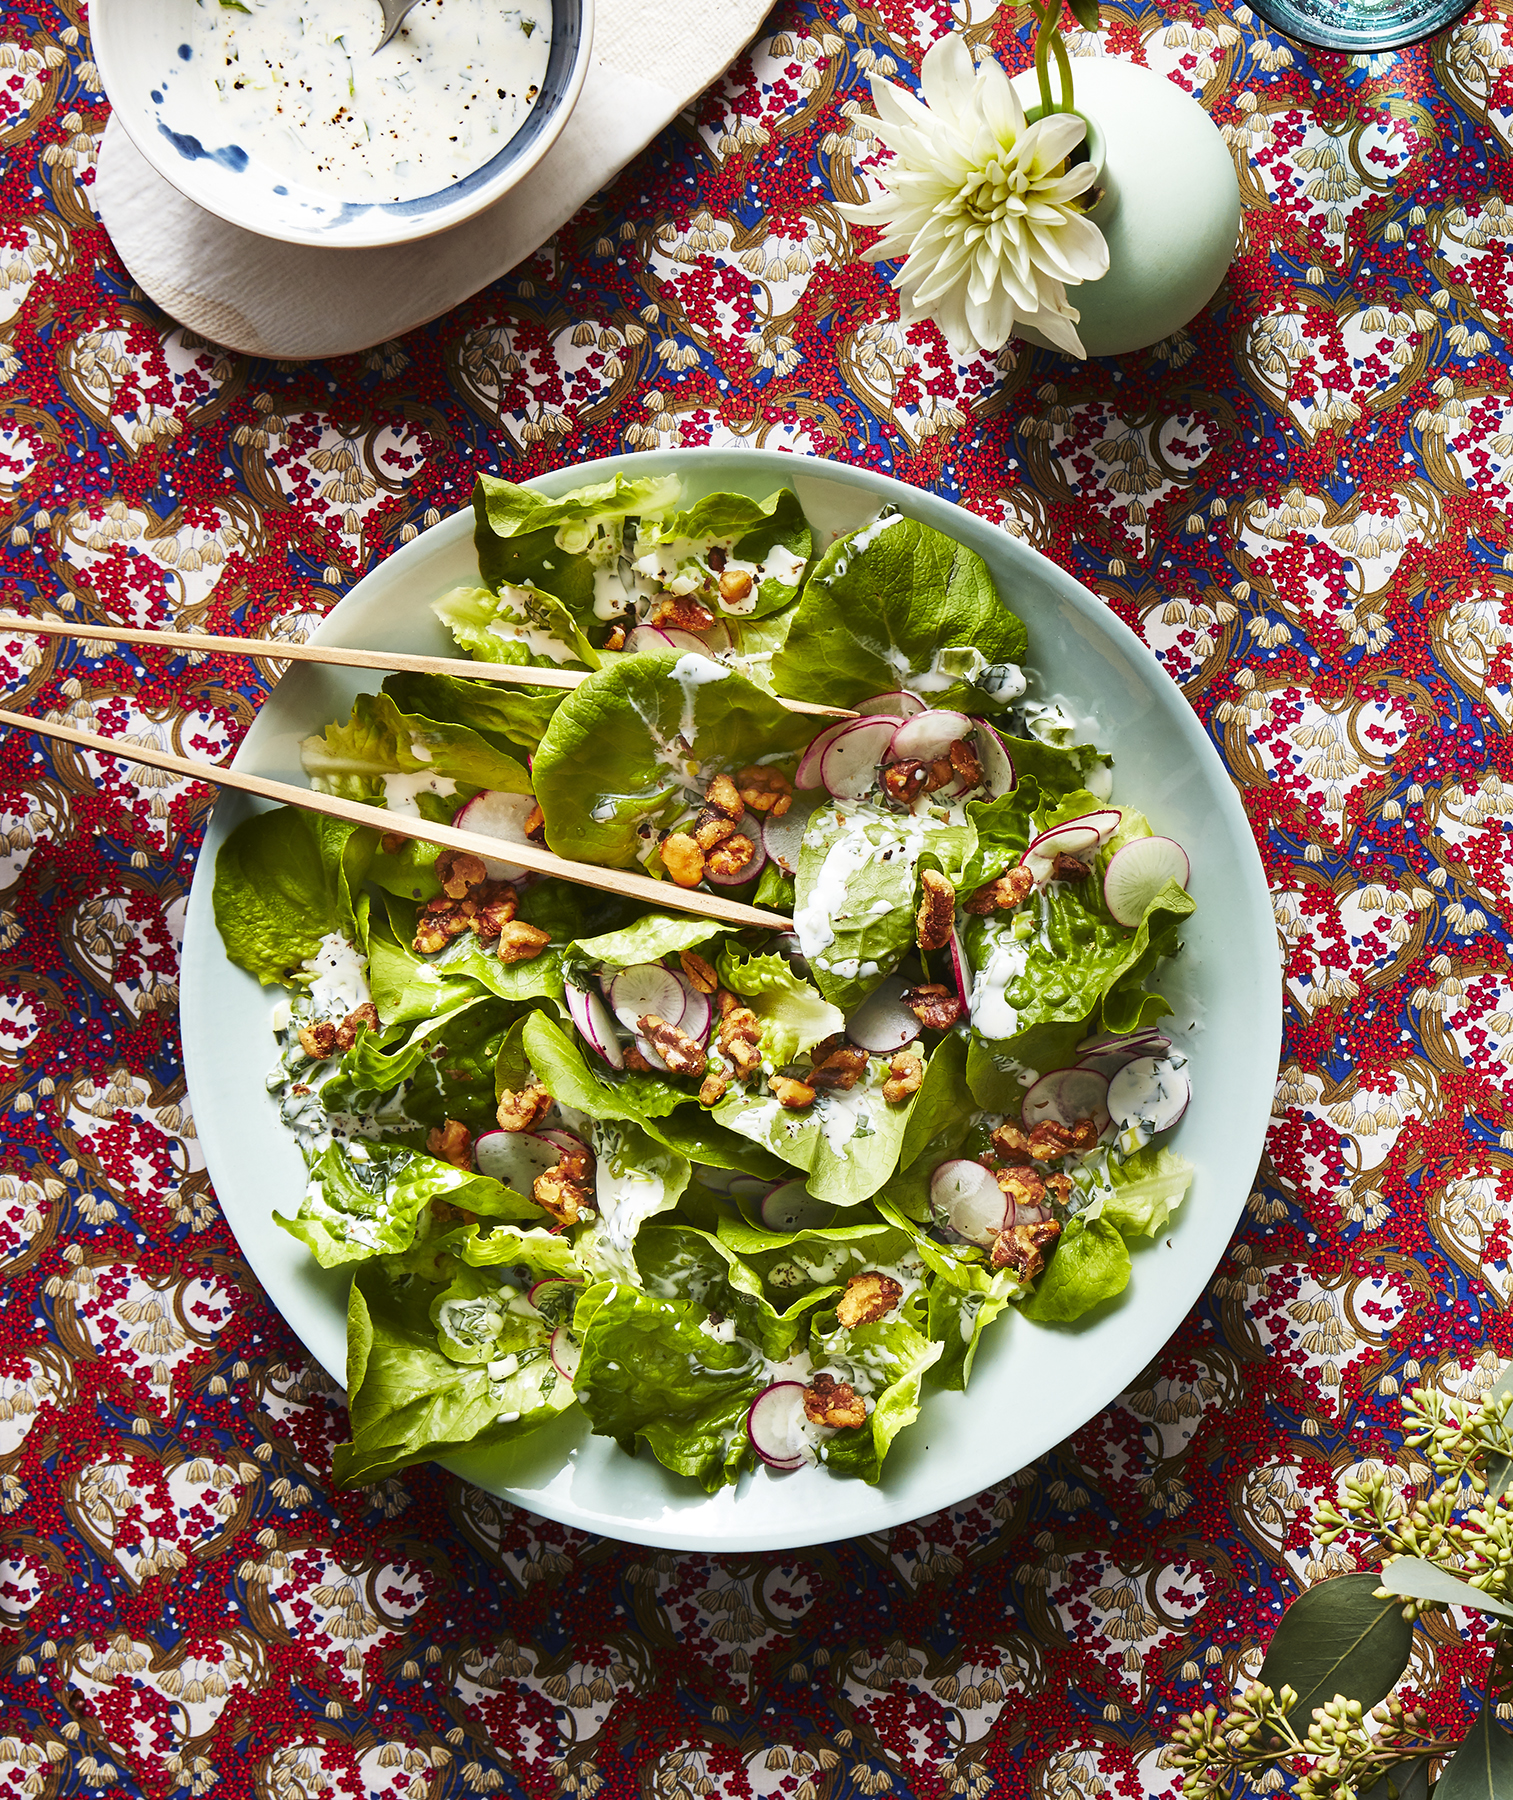 Bibb Salad With Basil-Buttermilk Dressing